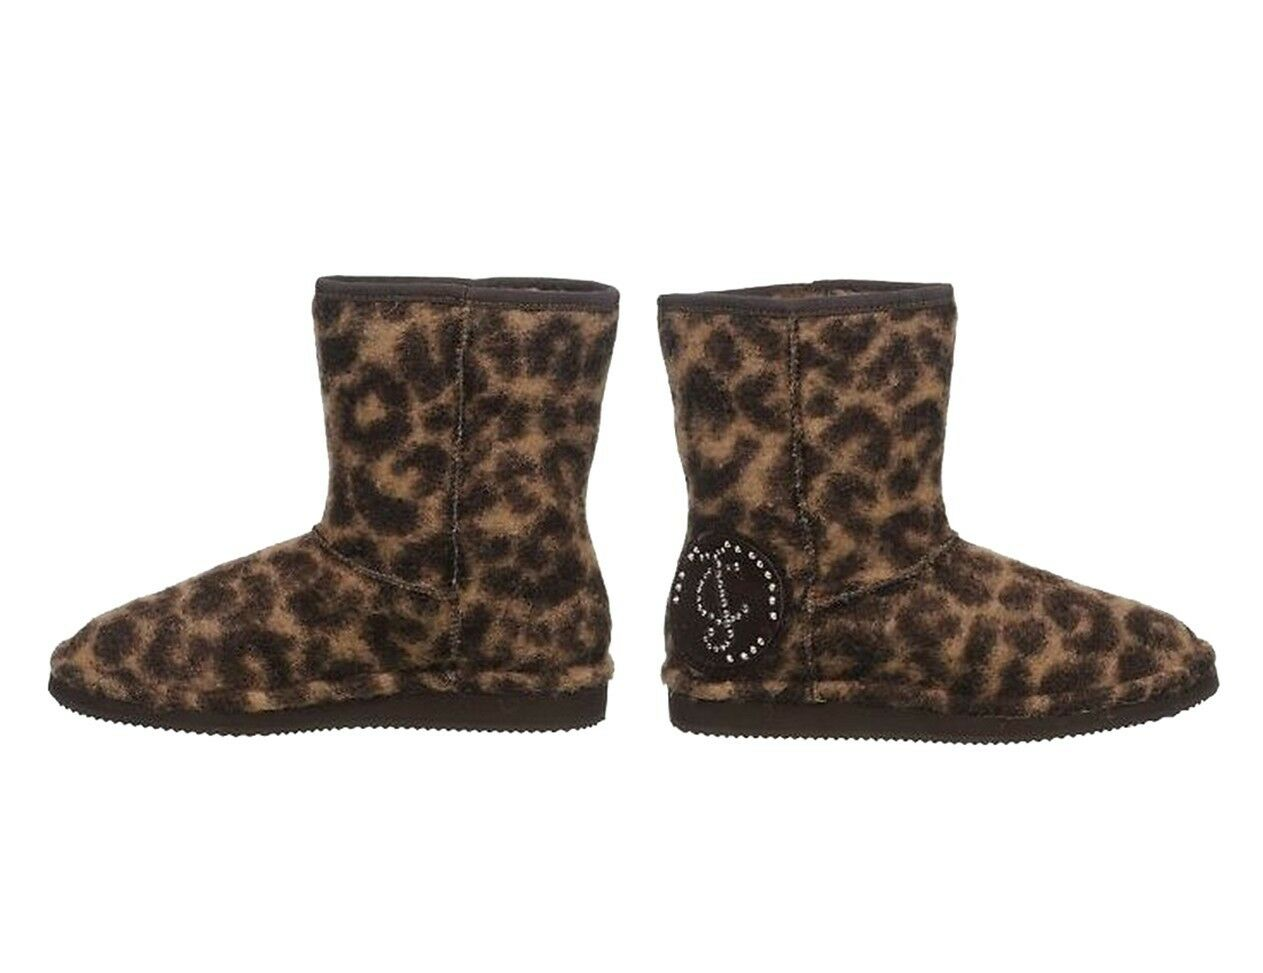 NEW Print JUICY COUTURE Ollie leopard Print NEW Women Fashion Boots Ankle shoes 8beefd